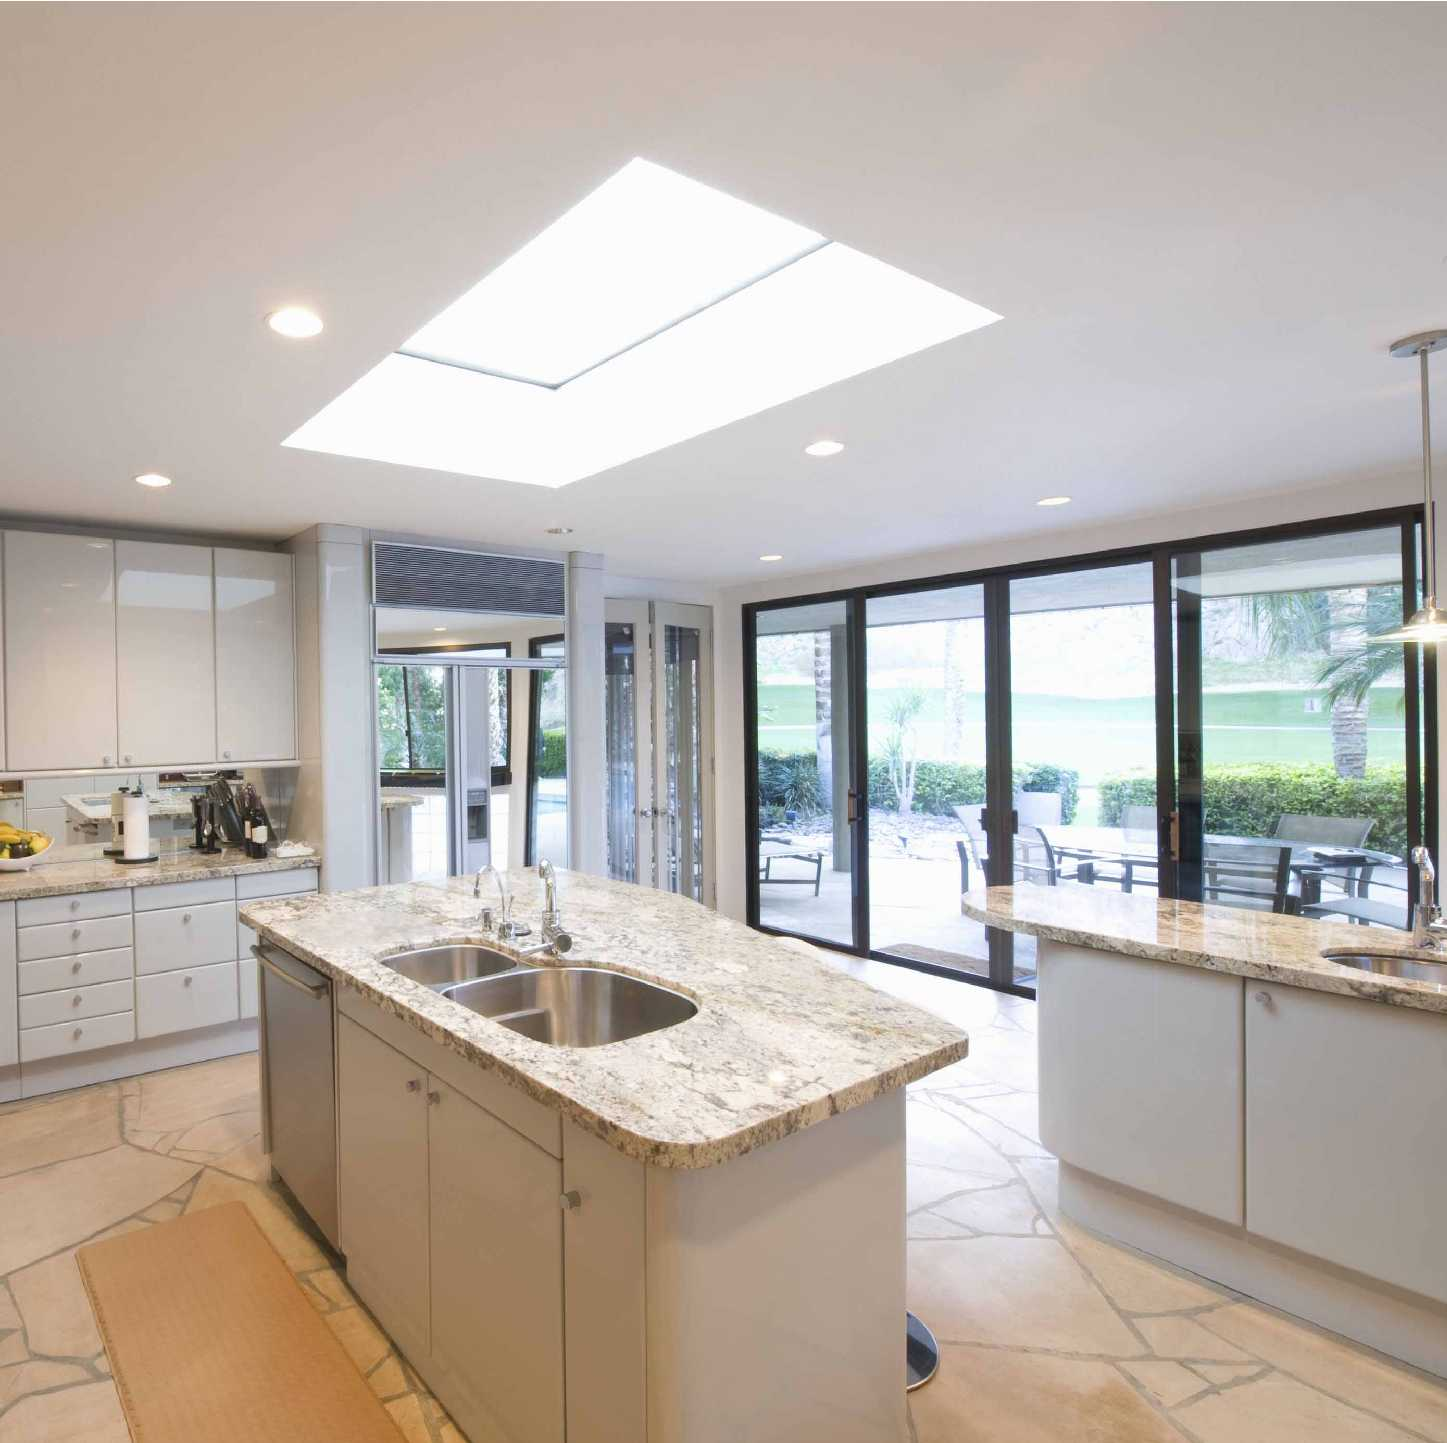 EcoGard Flat Roof light, Triple Glazed, Electric Opening, 1,000mm x 1,000mm